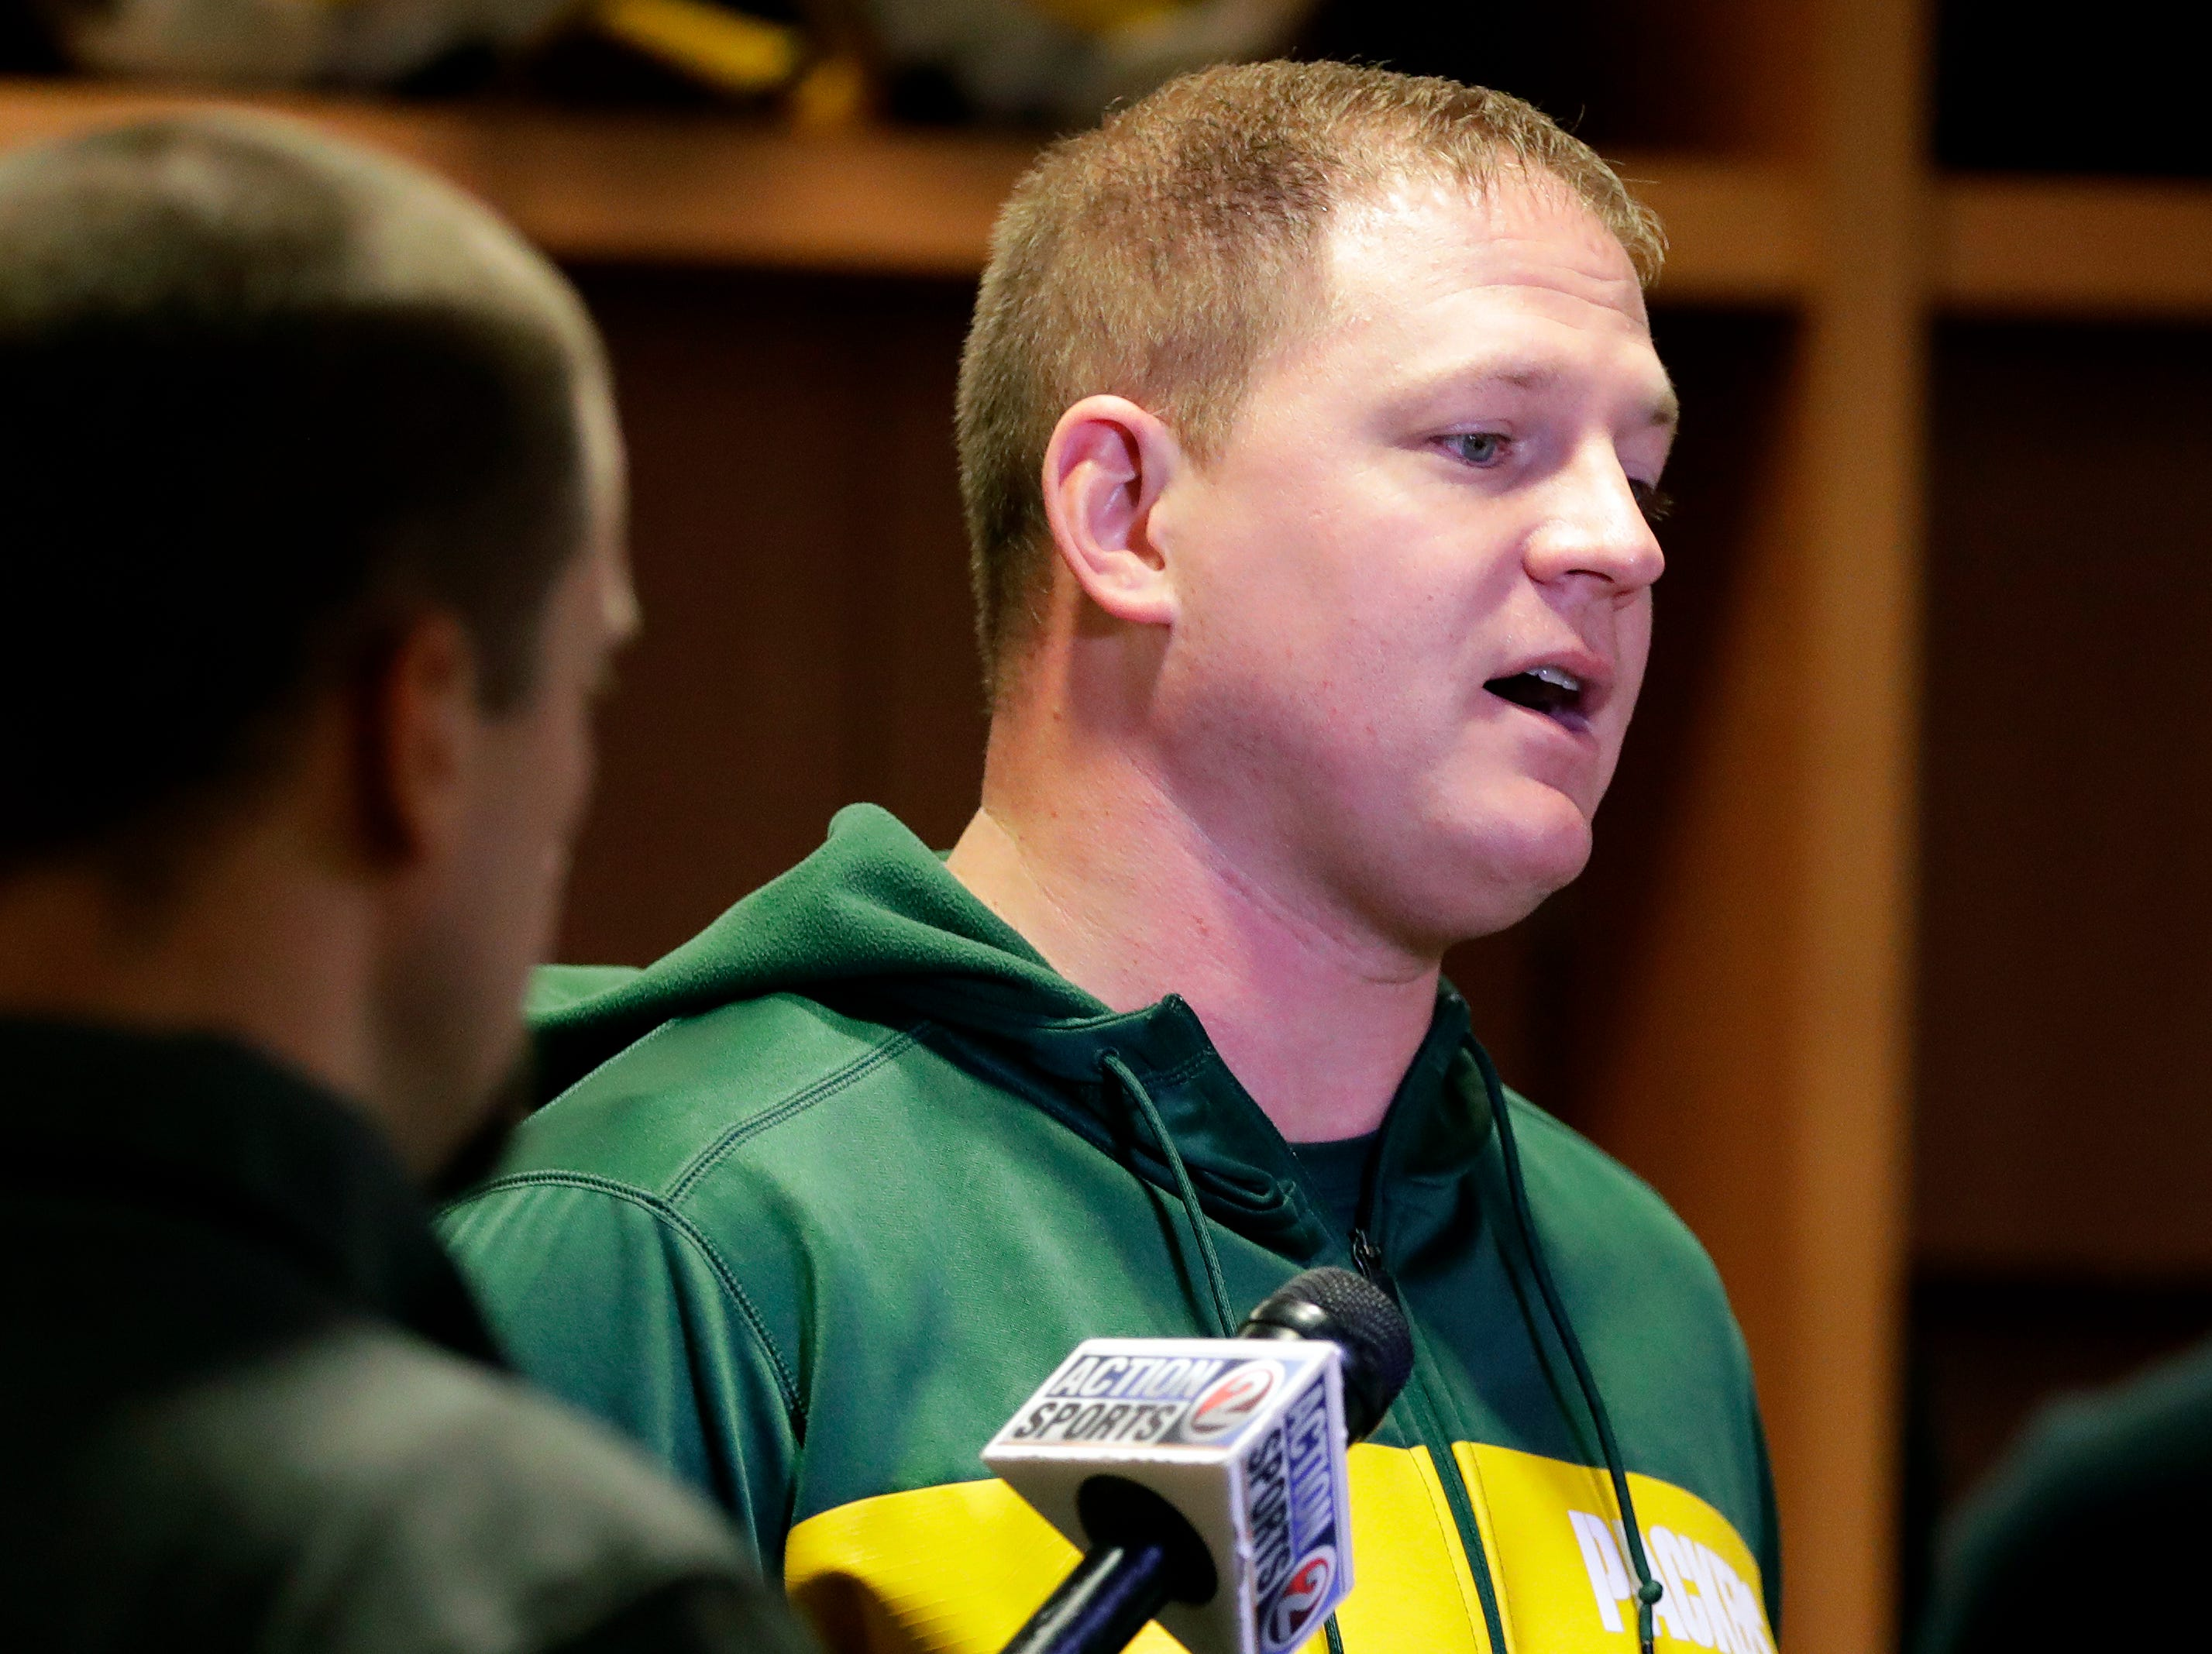 Luke Getsy, quarterbacks coach for the Green Bay Packers, speaks to media on Feb. 18, 2019, at Lambeau Field in Green Bay, Wis.